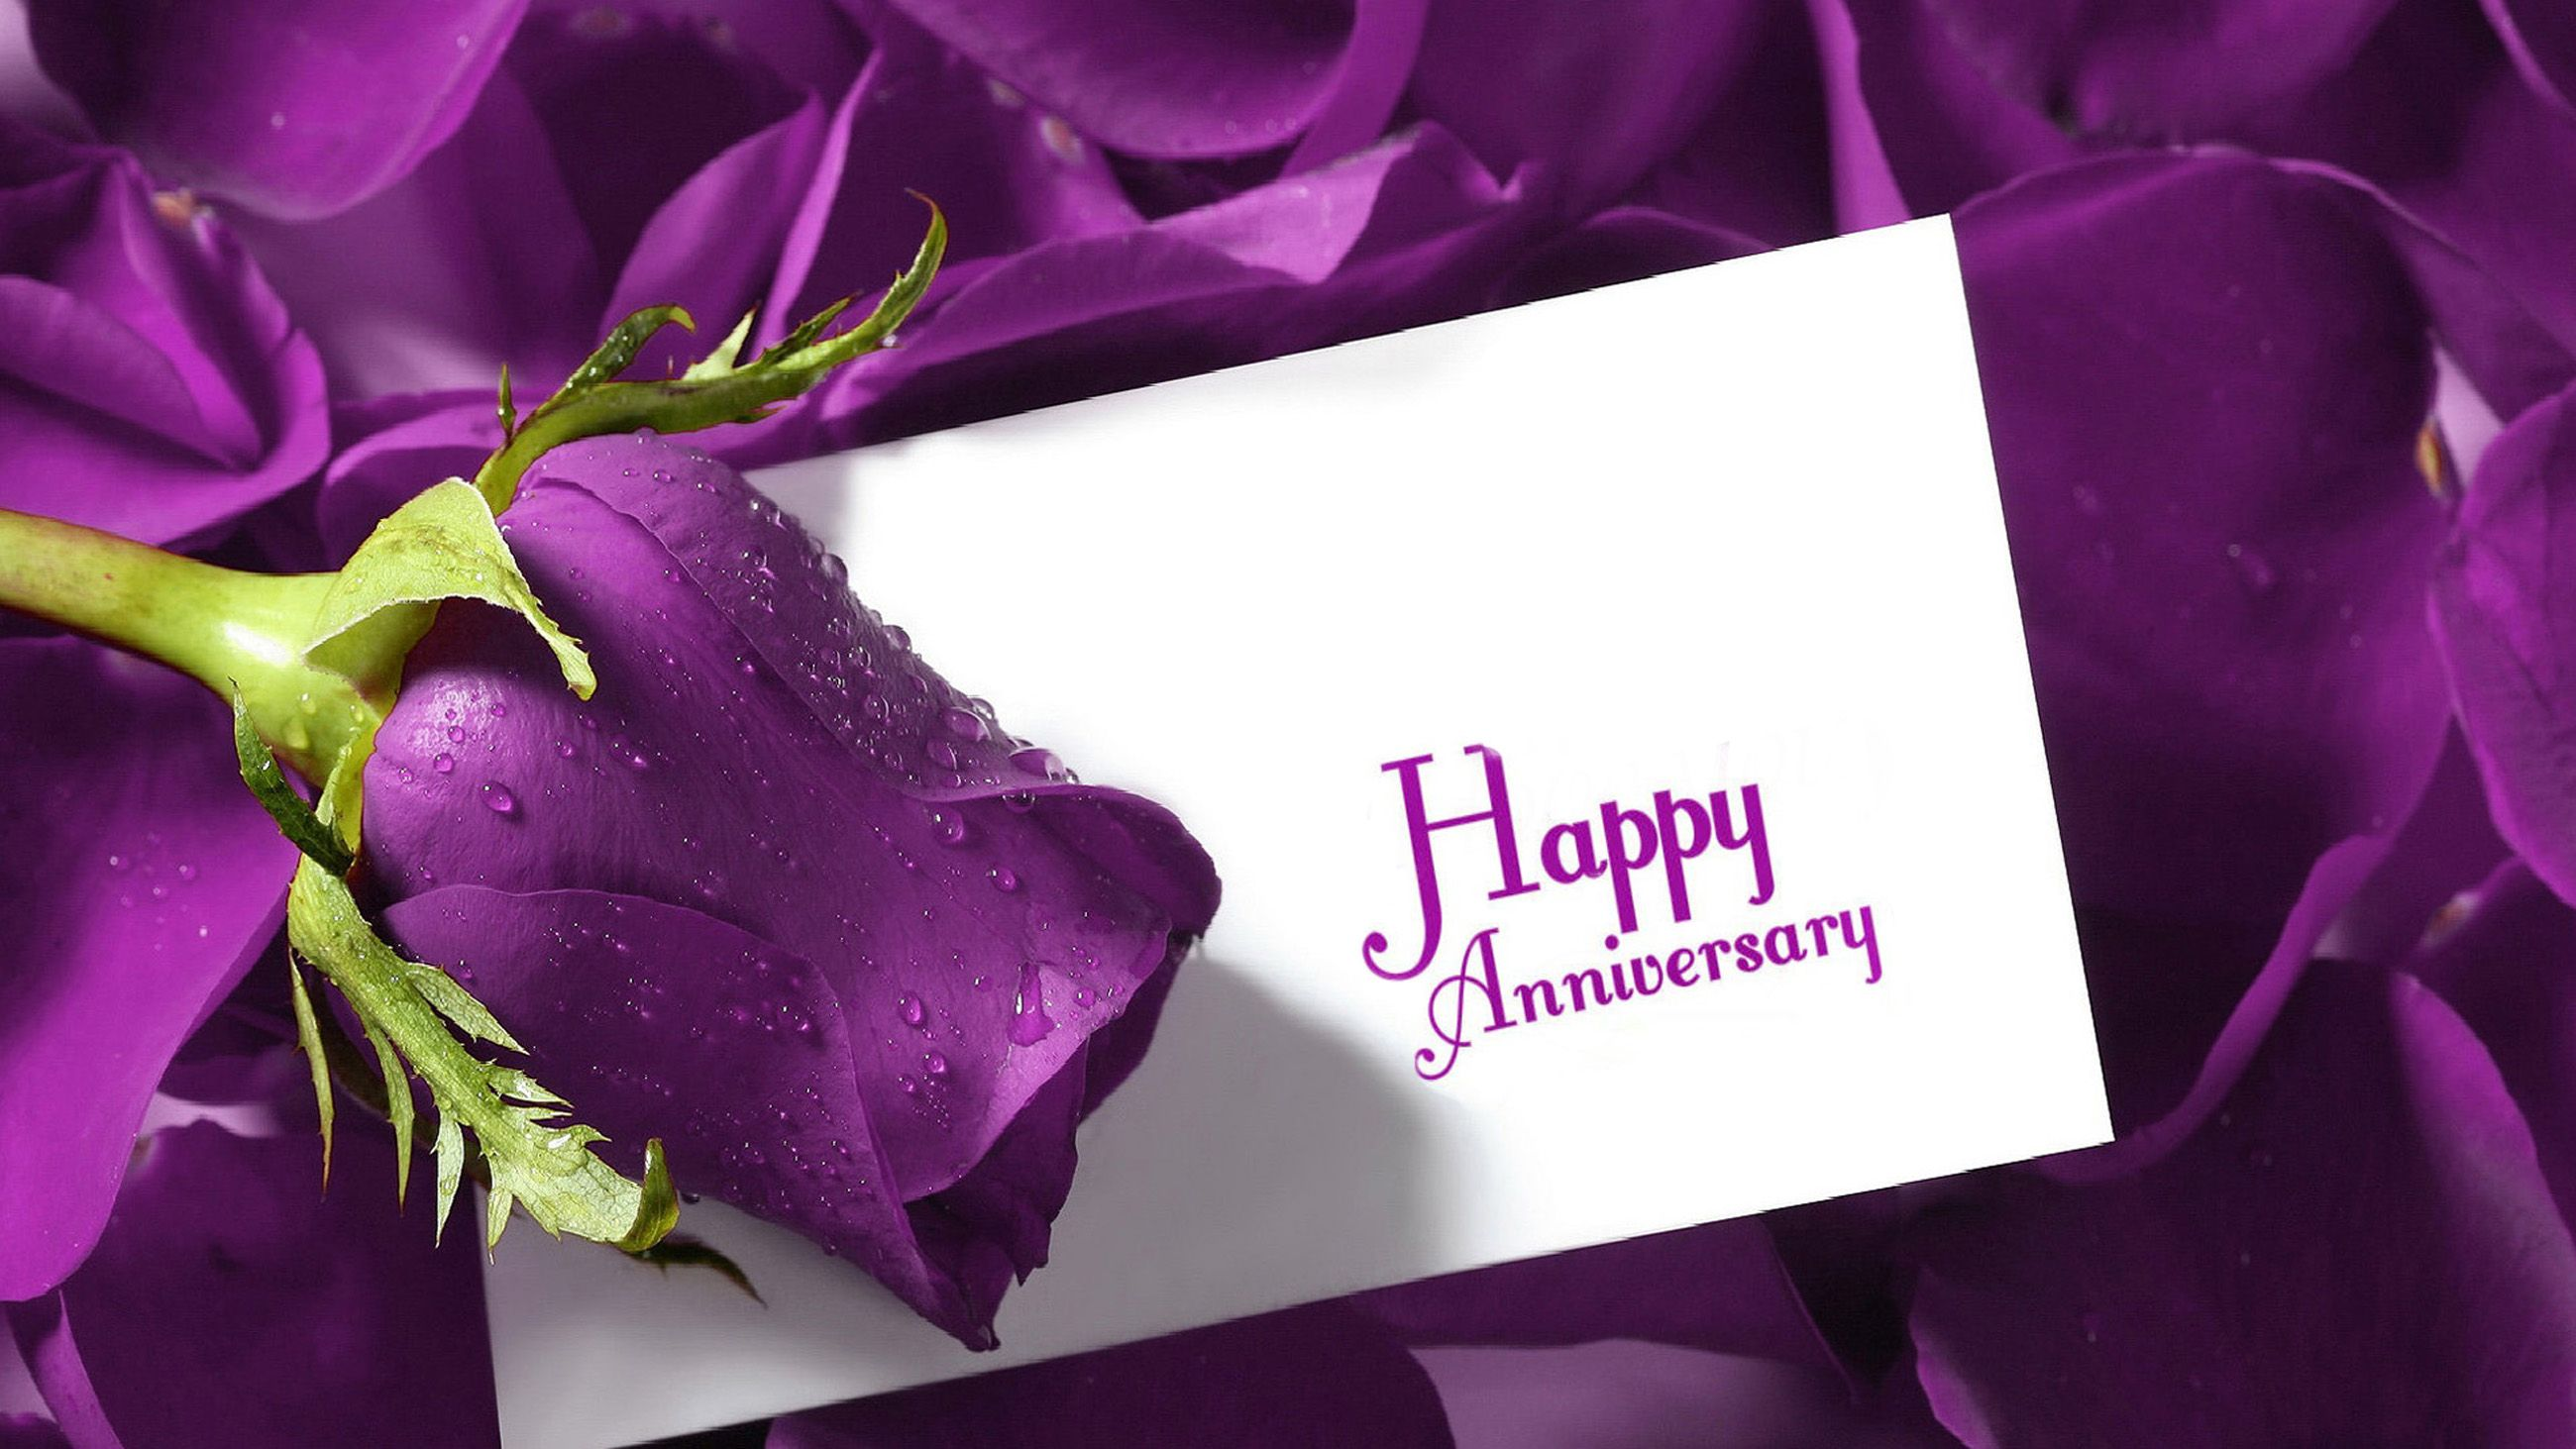 Happy Anniversary Sooze Page 2 Cute Love Wallpapers Love Wallpaper Download Valentines Day Funny